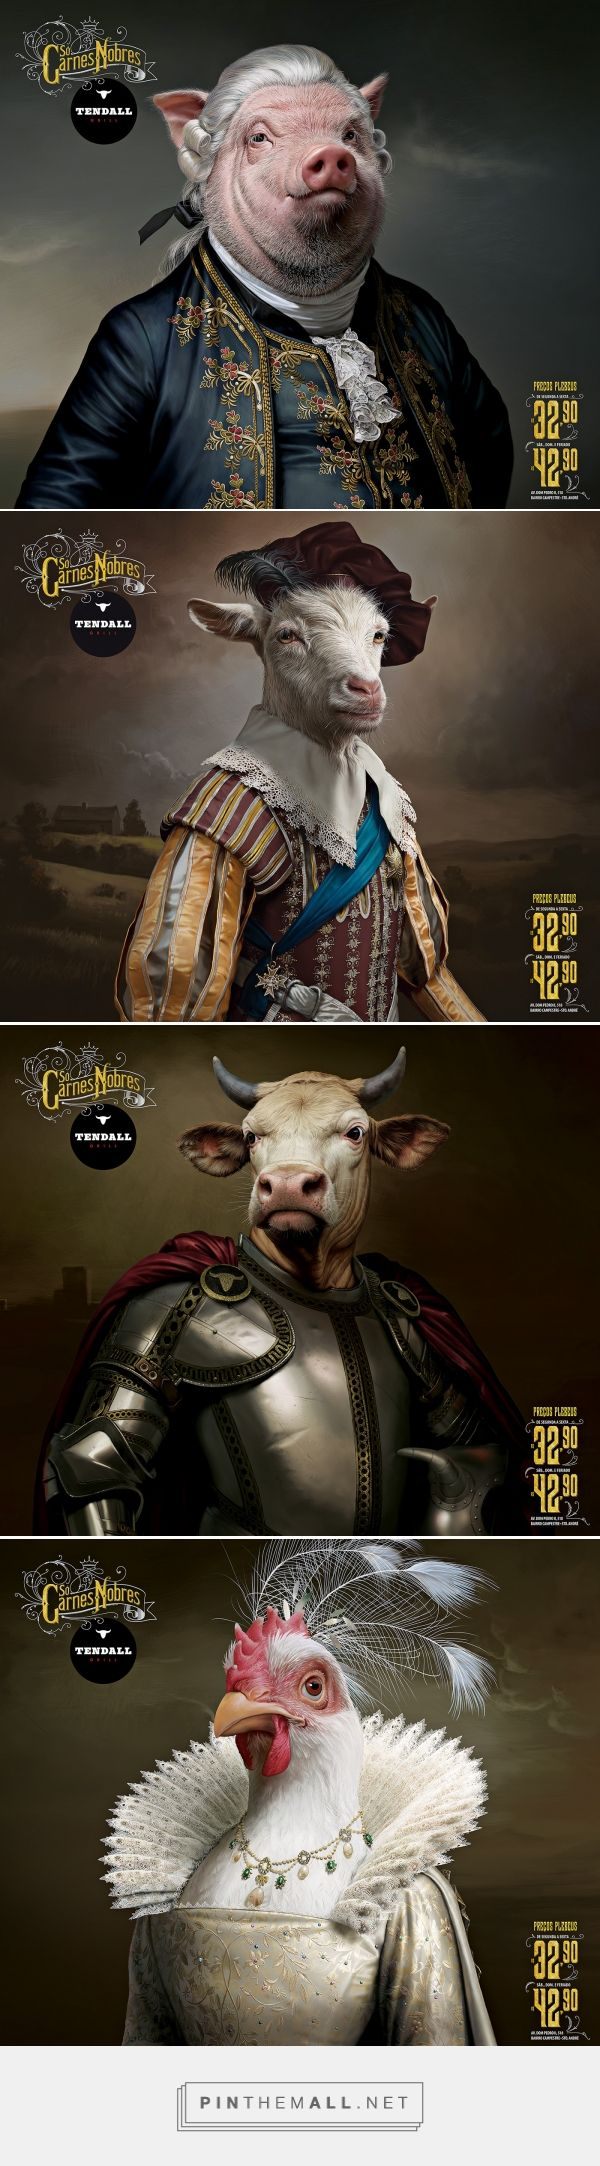 Tendall - Só Carnes Nobres on Behance... - a grouped images picture - Pin Them All